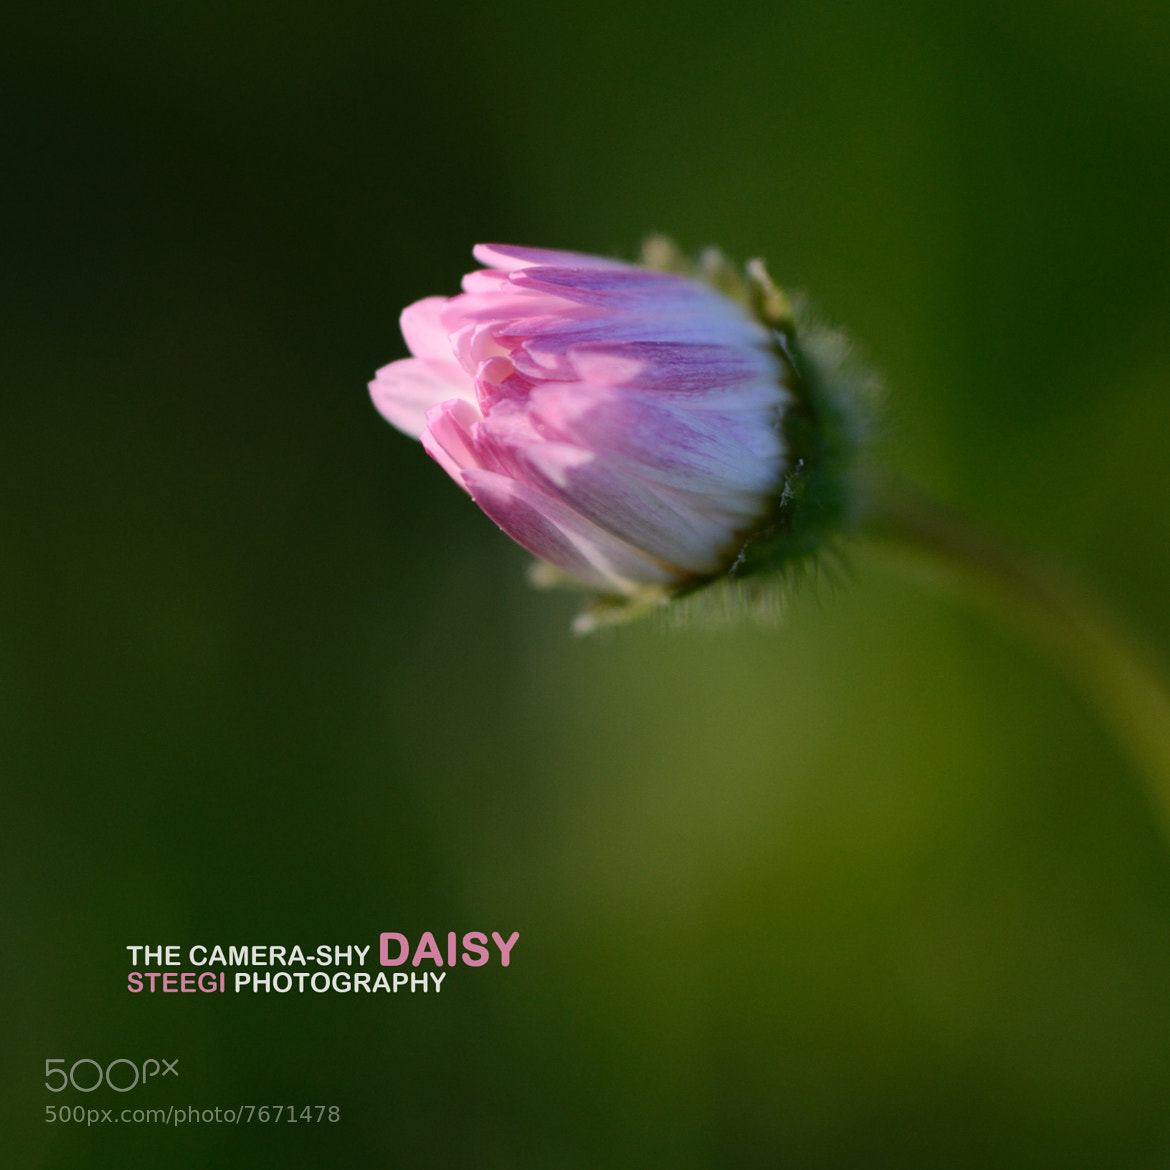 Photograph The camera-shy Daisy by Andreas Steegmann on 500px